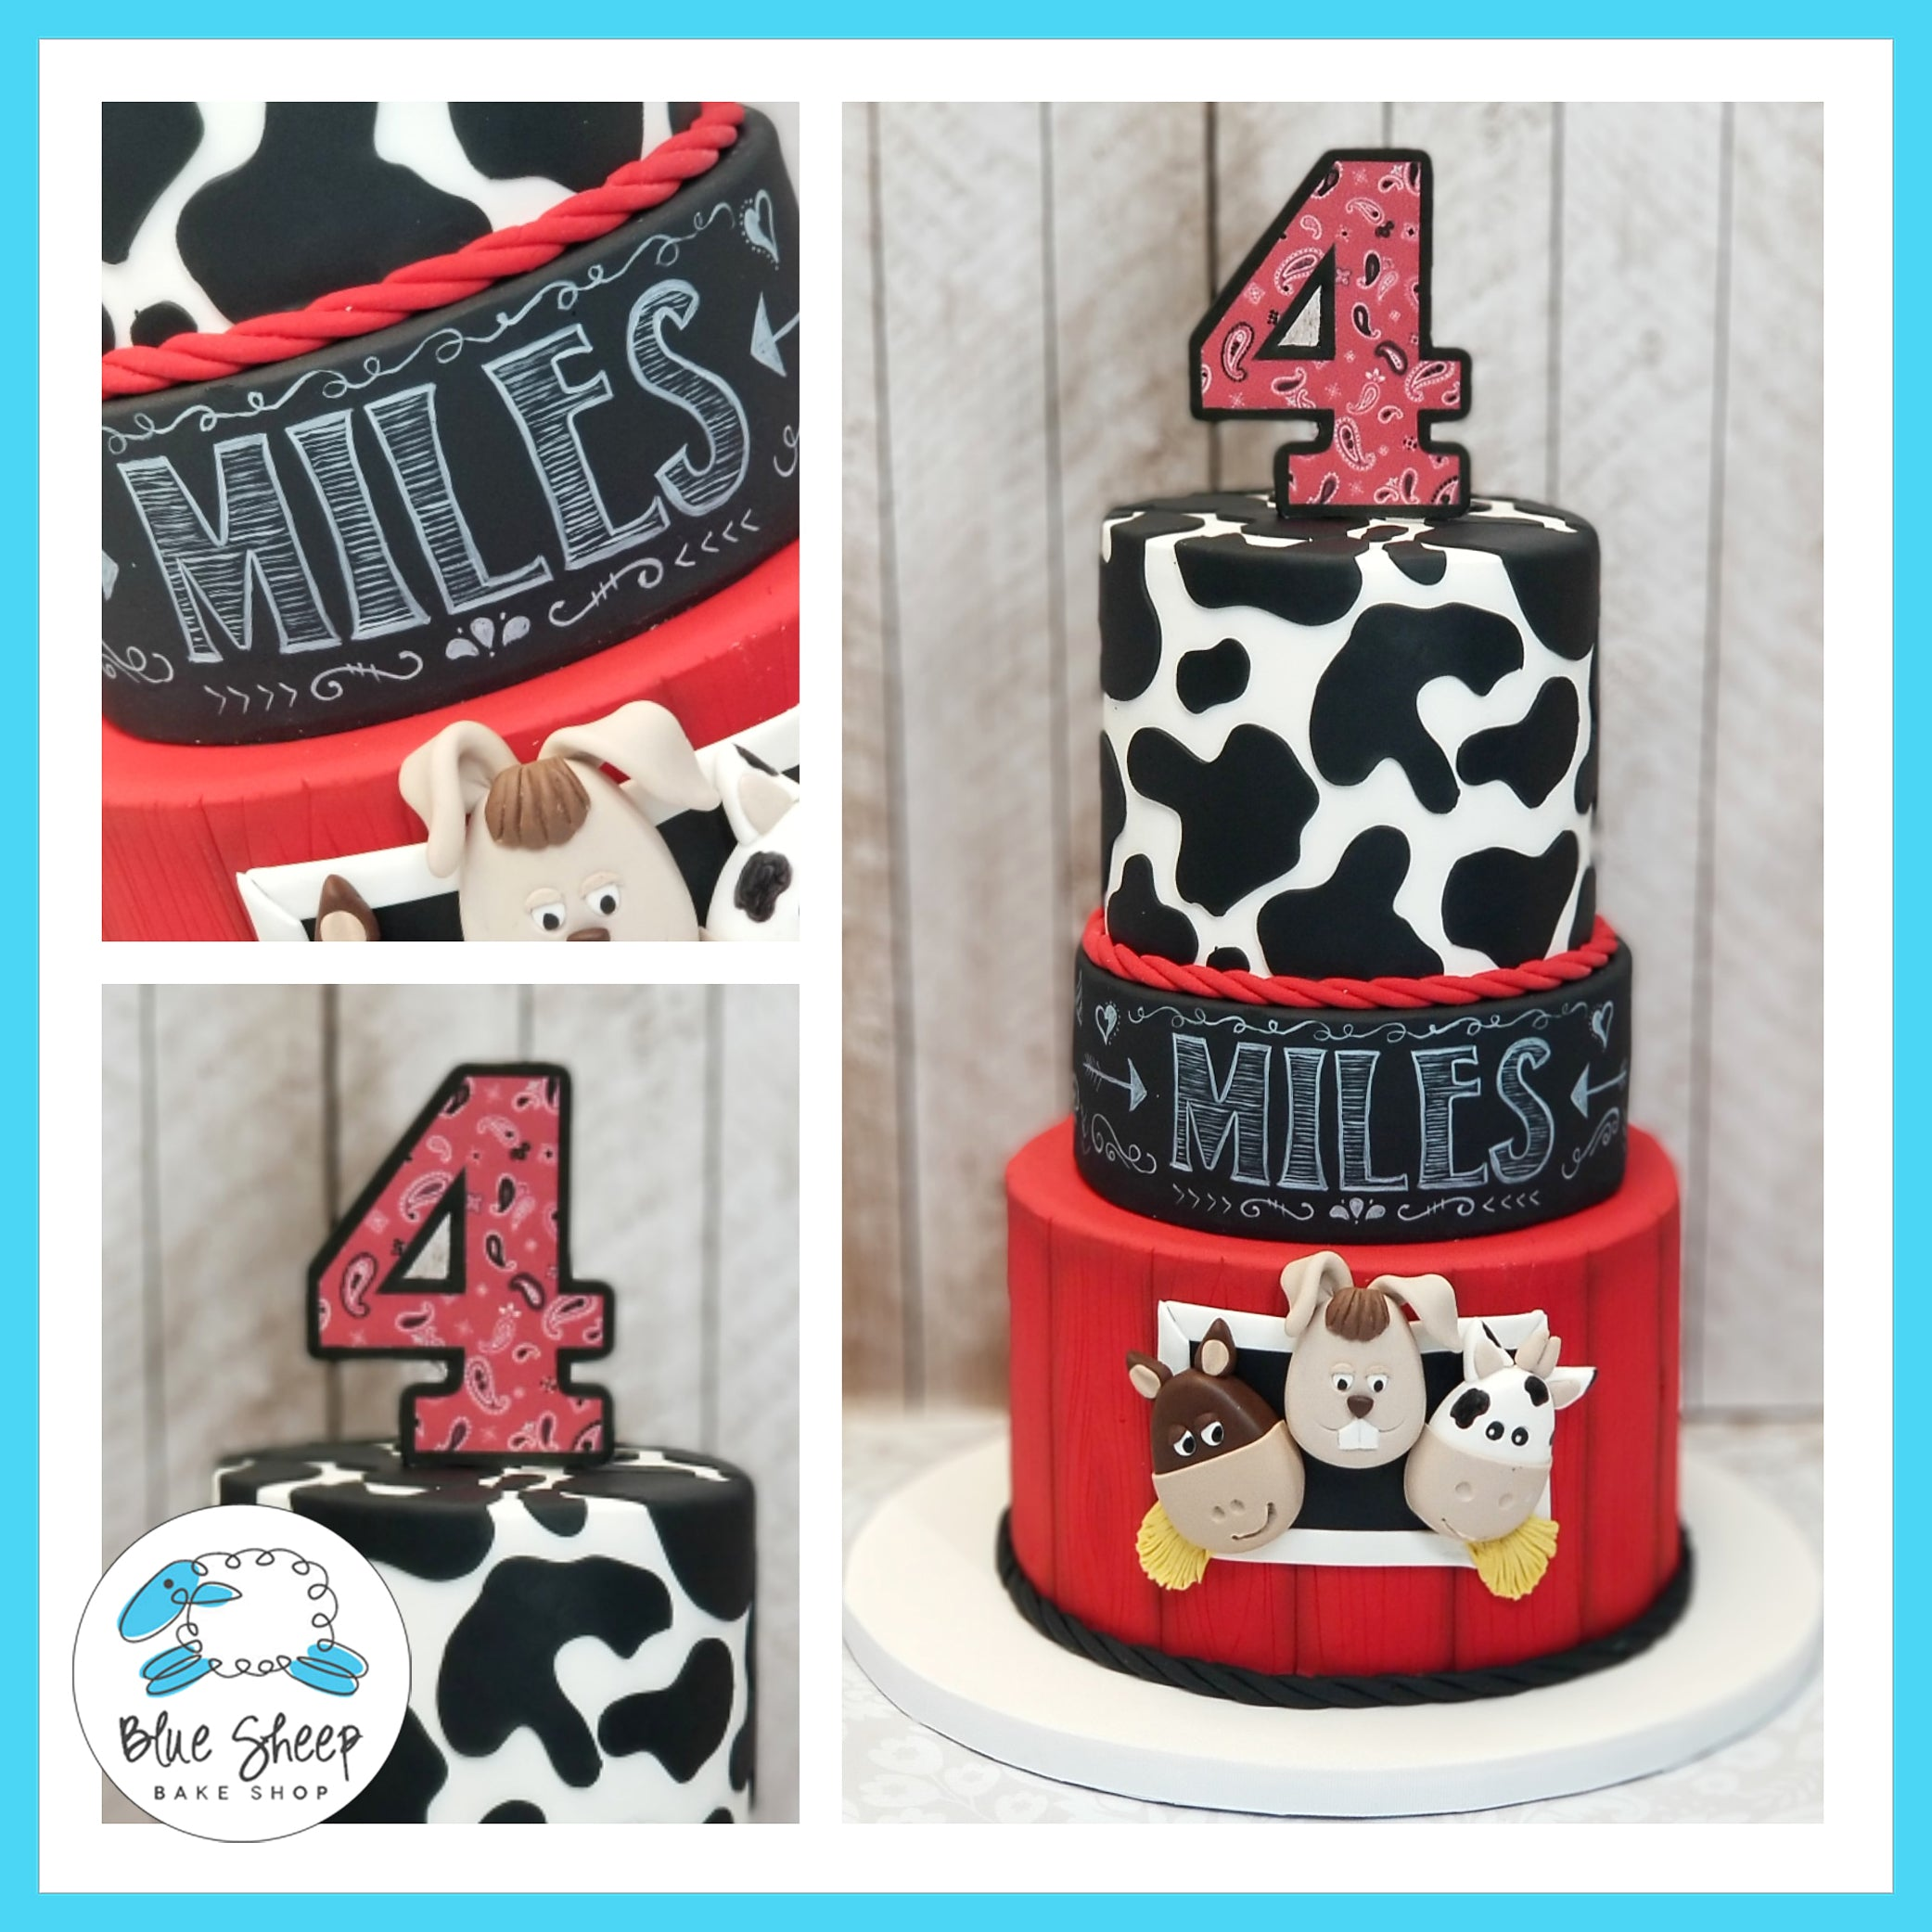 Remarkable Miles Barnyard 4Th Birthday Cake Nj Blue Sheep Bake Shop Funny Birthday Cards Online Sheoxdamsfinfo